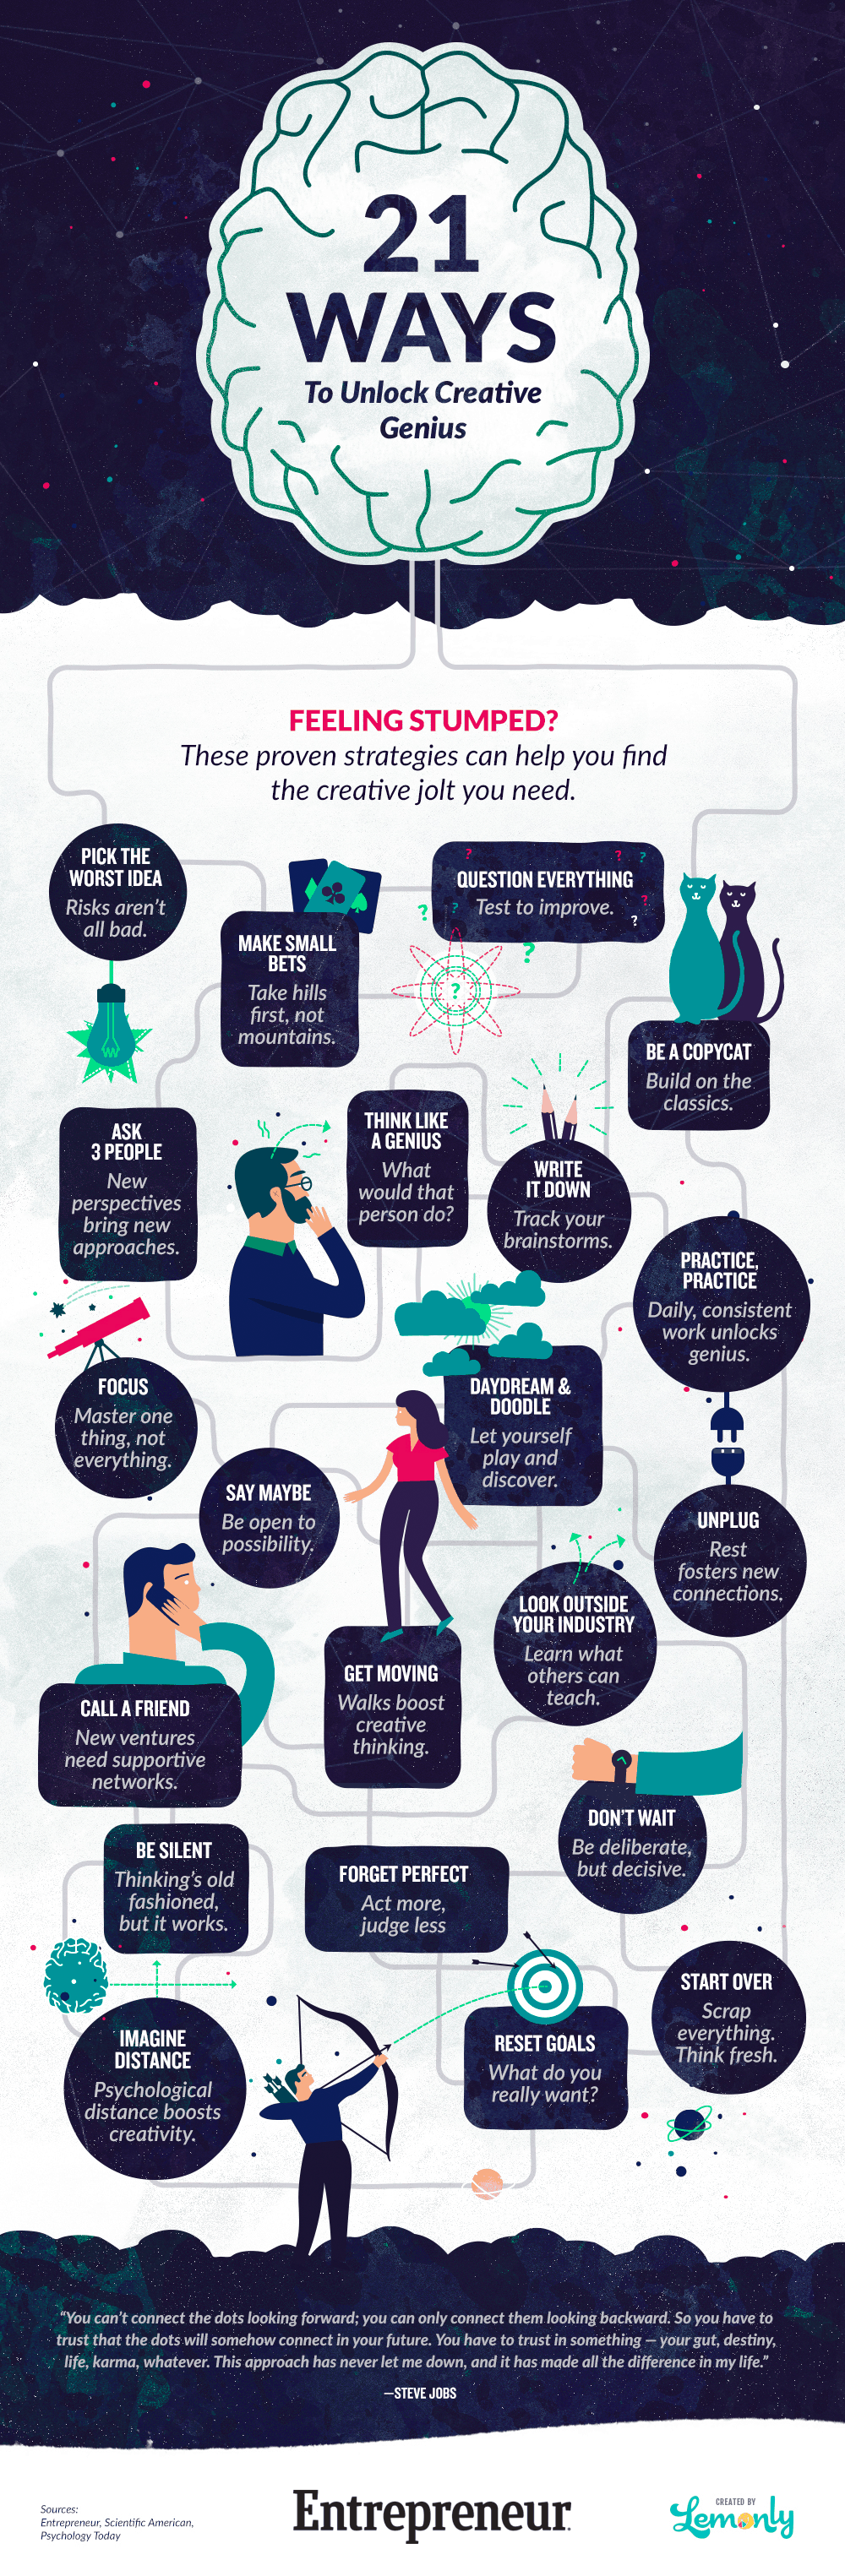 Infographic from Entrepreneur about creativity and 21 ways to get insipred